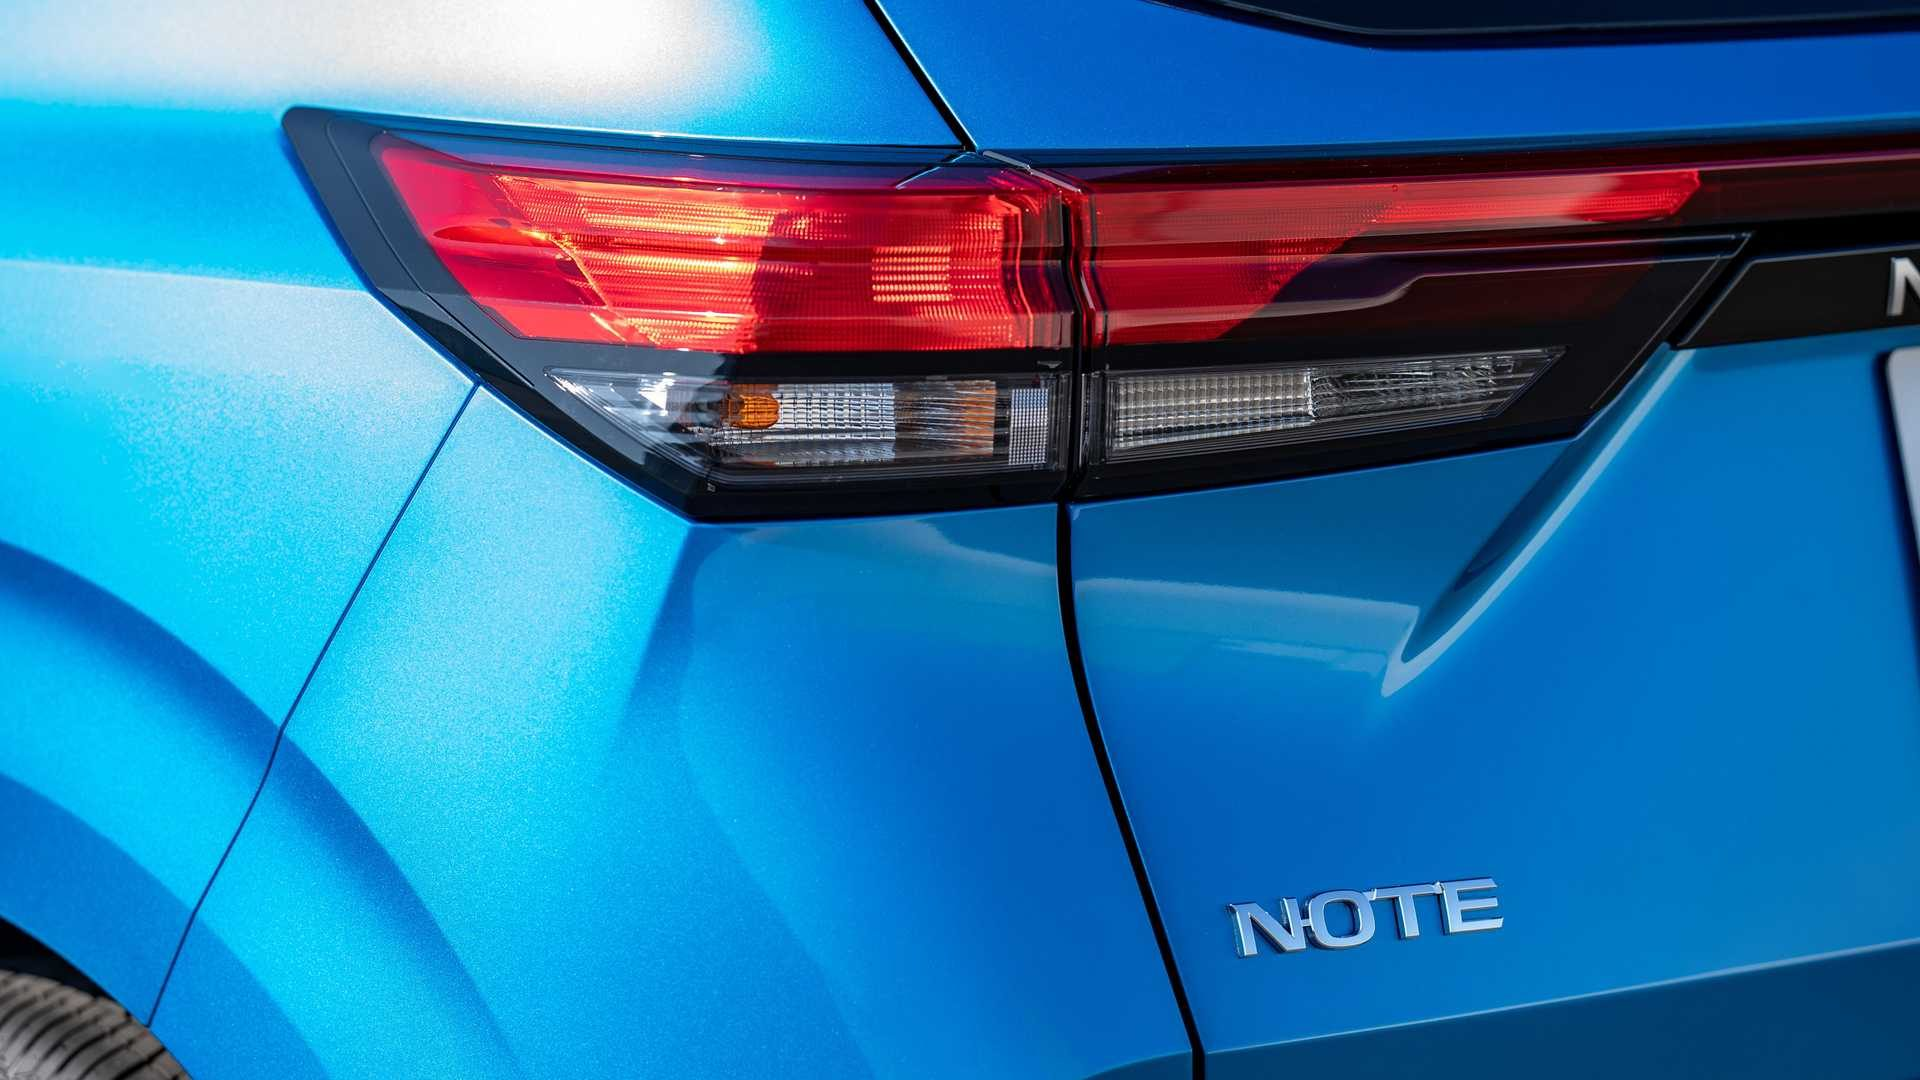 2021-nissan-note (10)